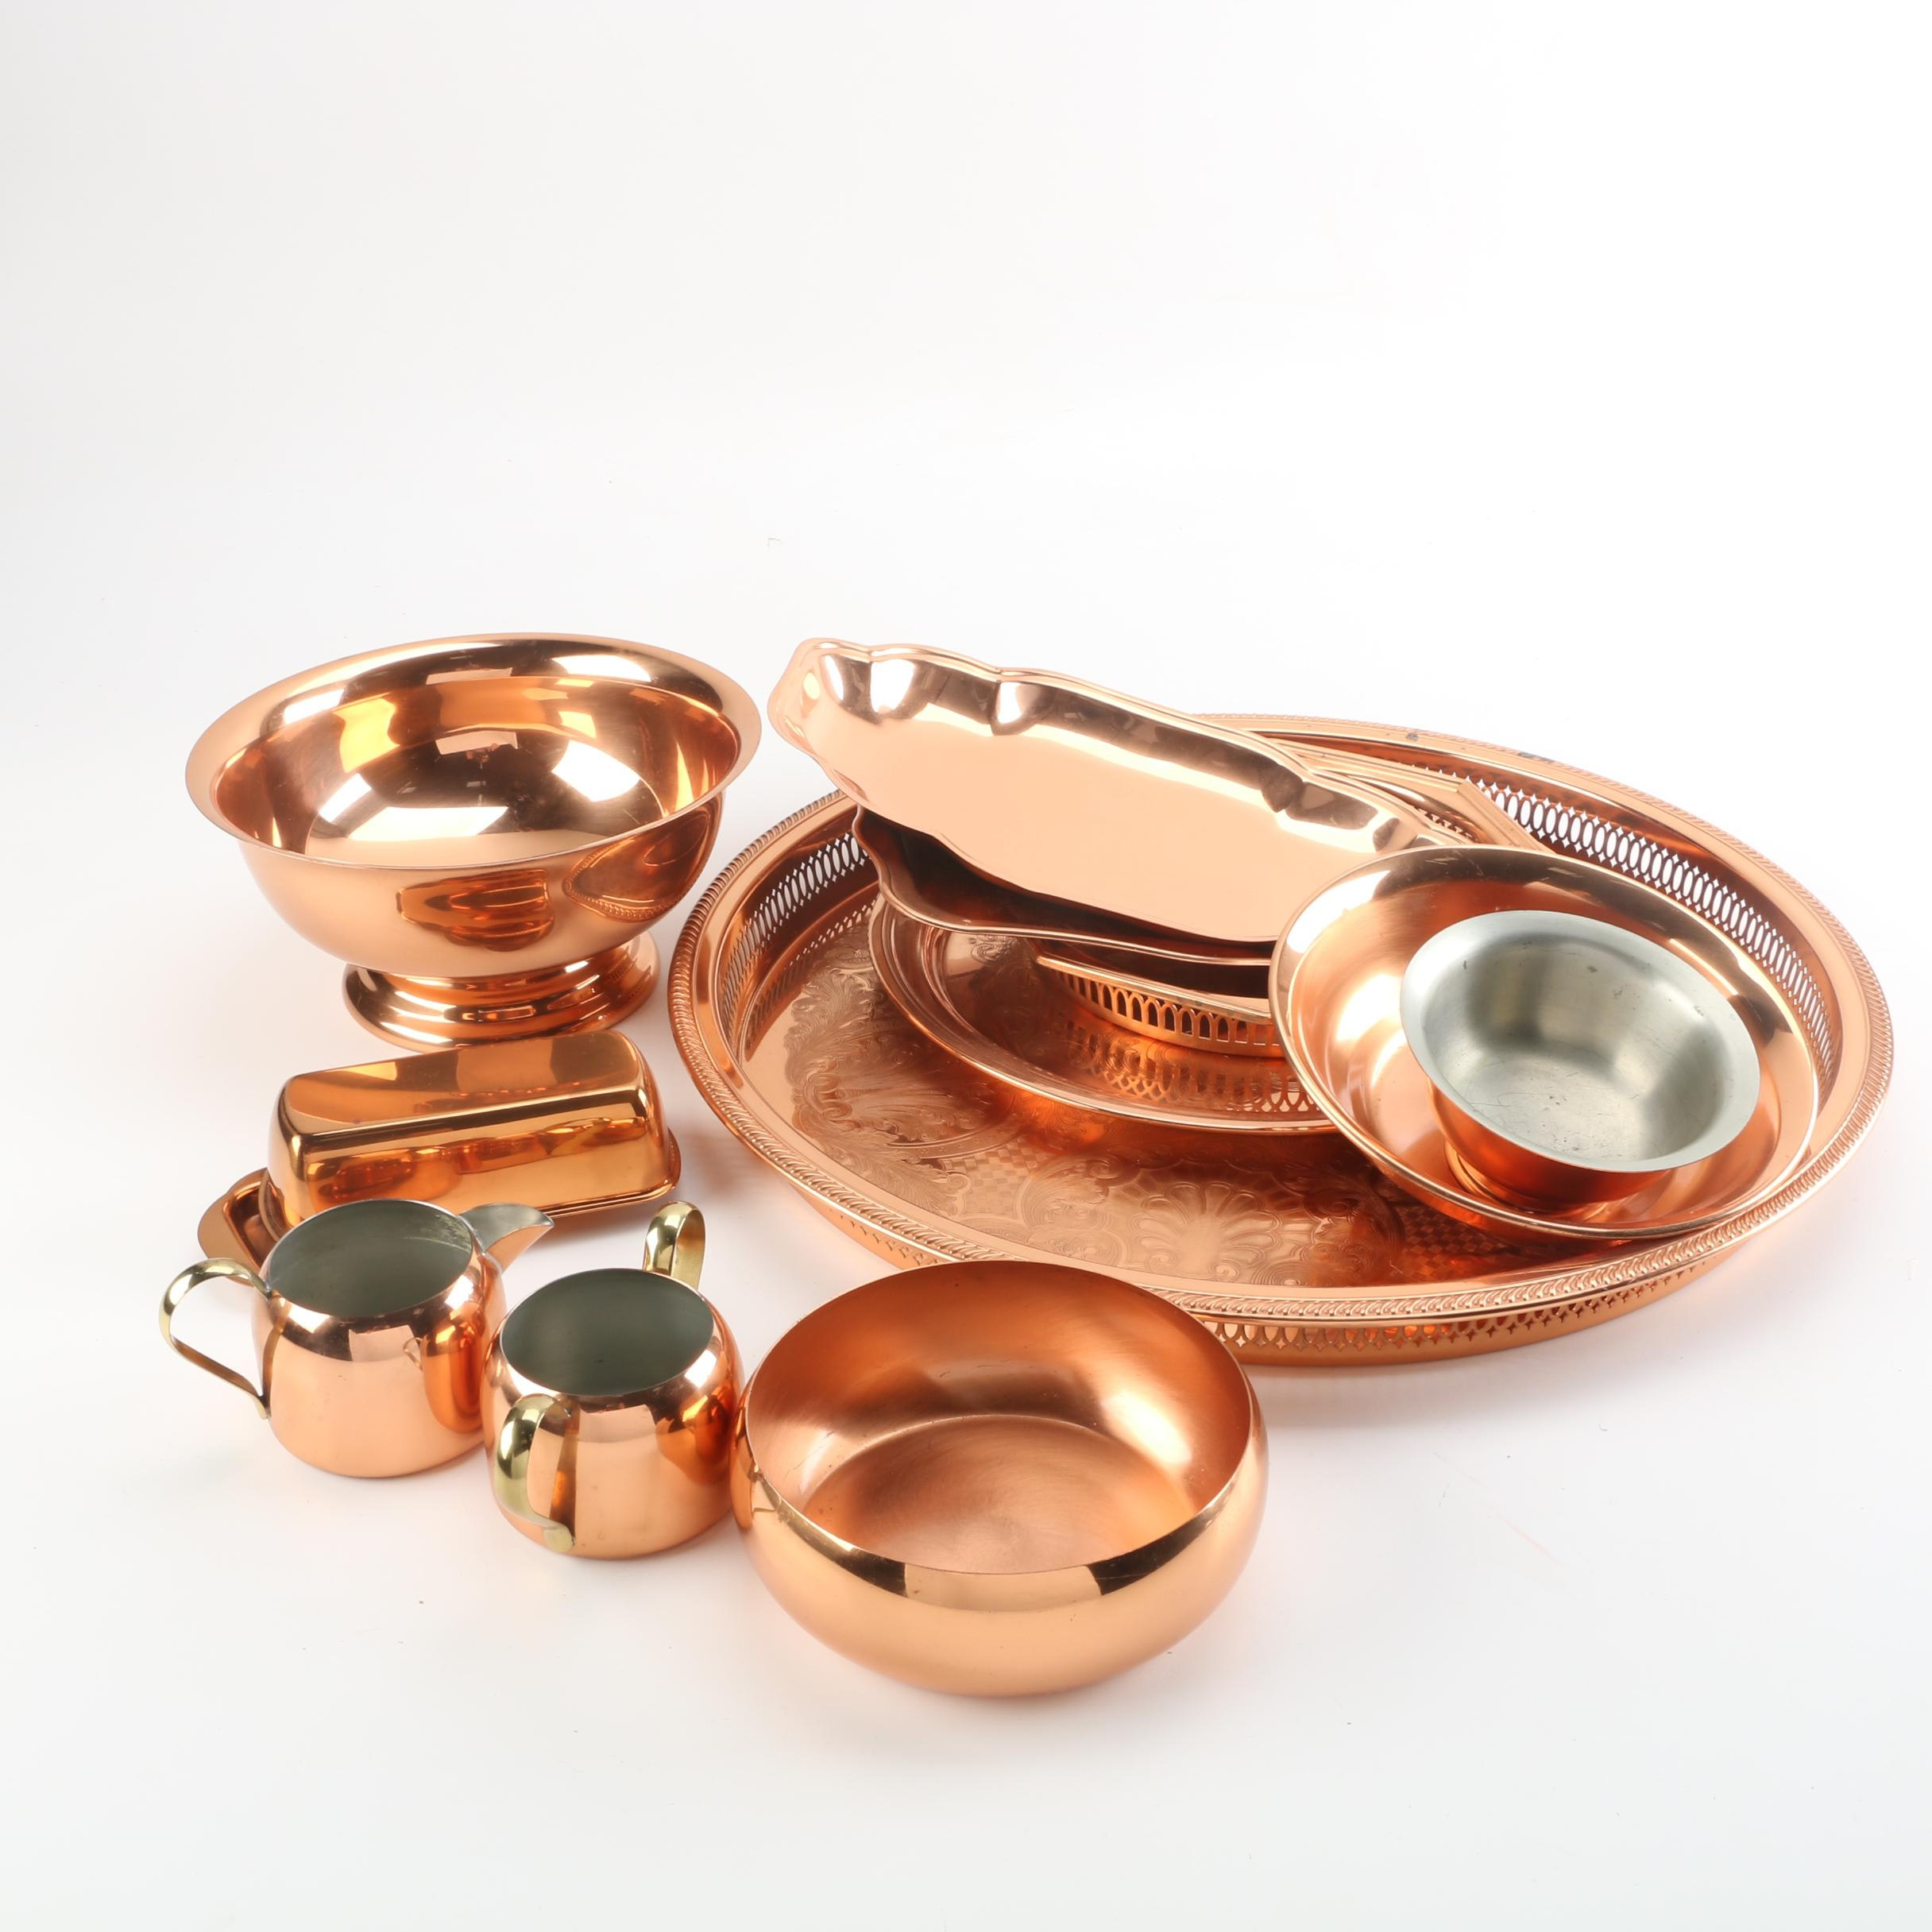 Copper and Metal Serveware Featuring Coppercraft Guild